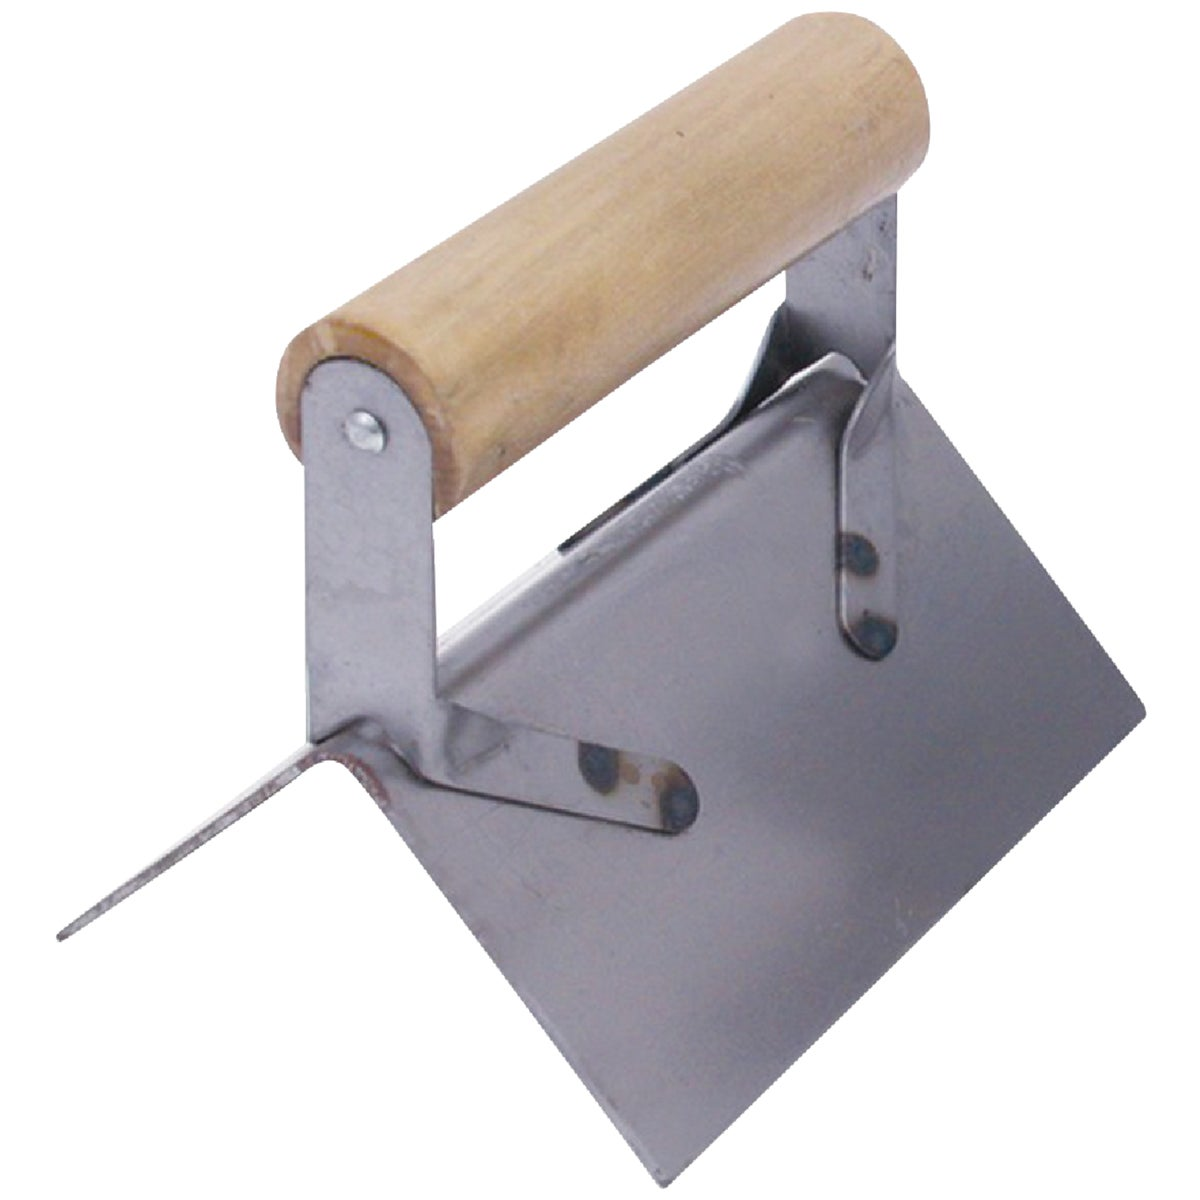 OUTSIDE CORNER TROWEL - 16142 by Marshalltown Trowel